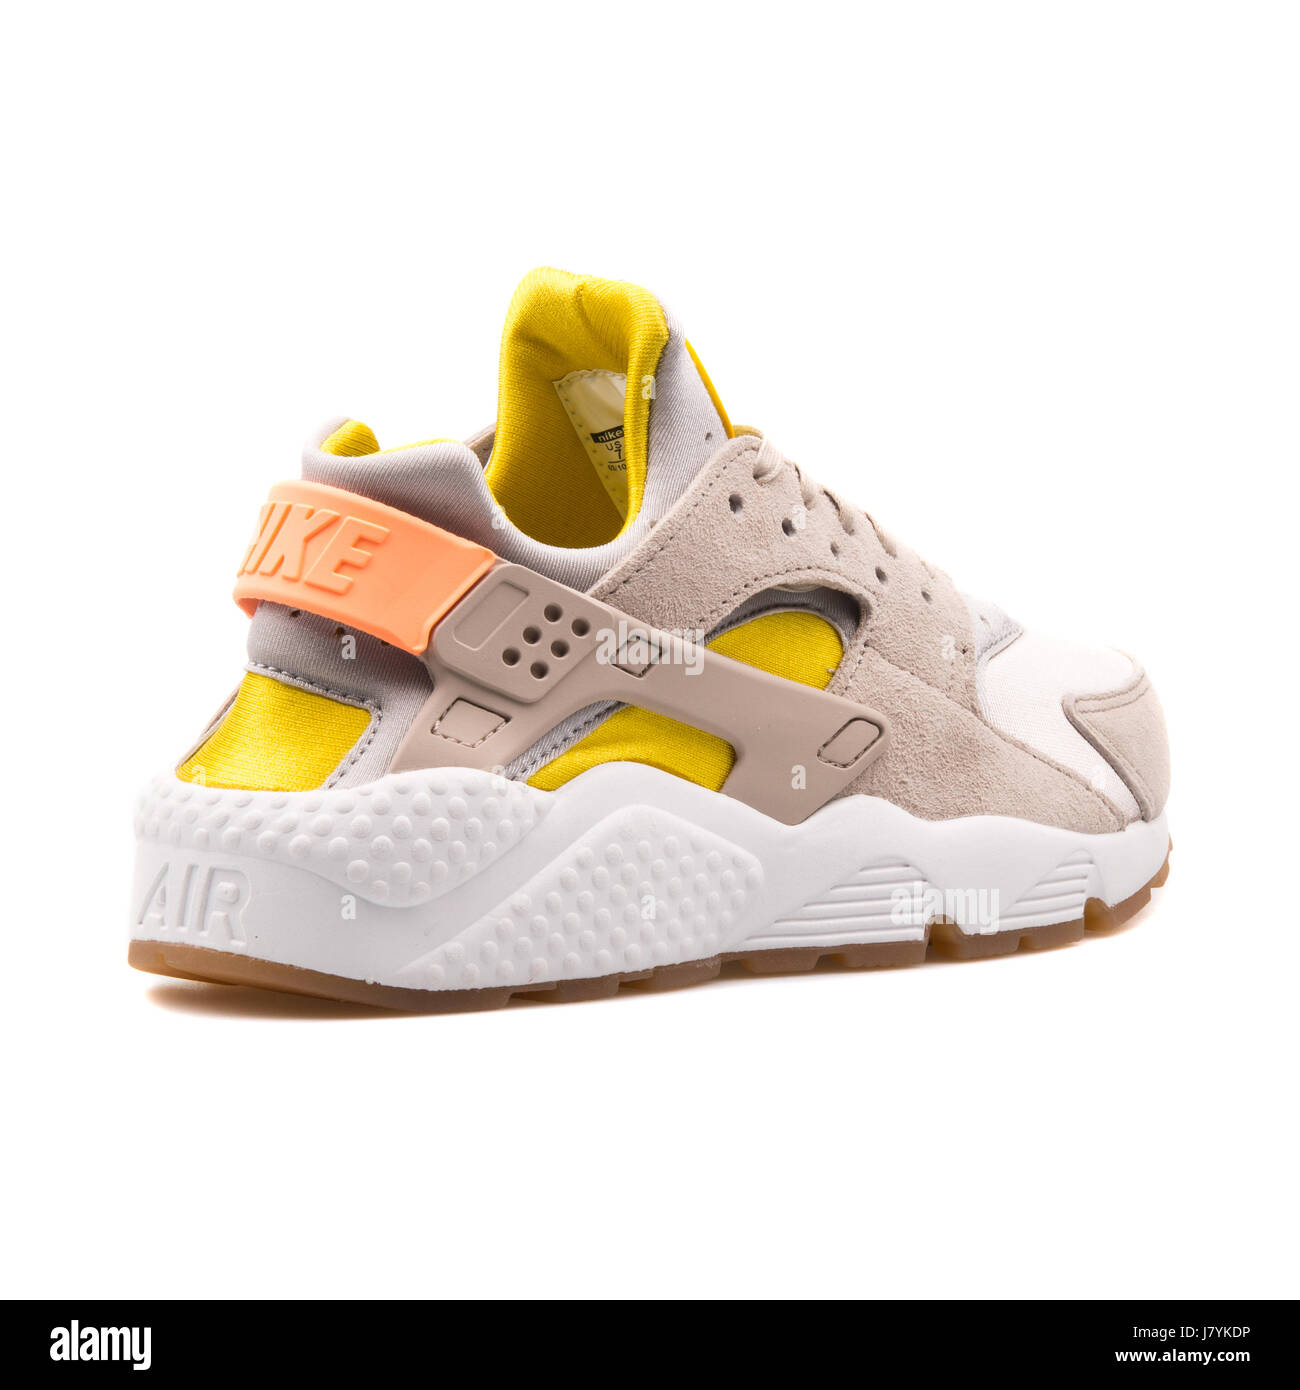 new product f3b93 df76b Nike WMNS Air Huarache Run PRM Women s Metallic Silver Running Sneakers -  683818-002